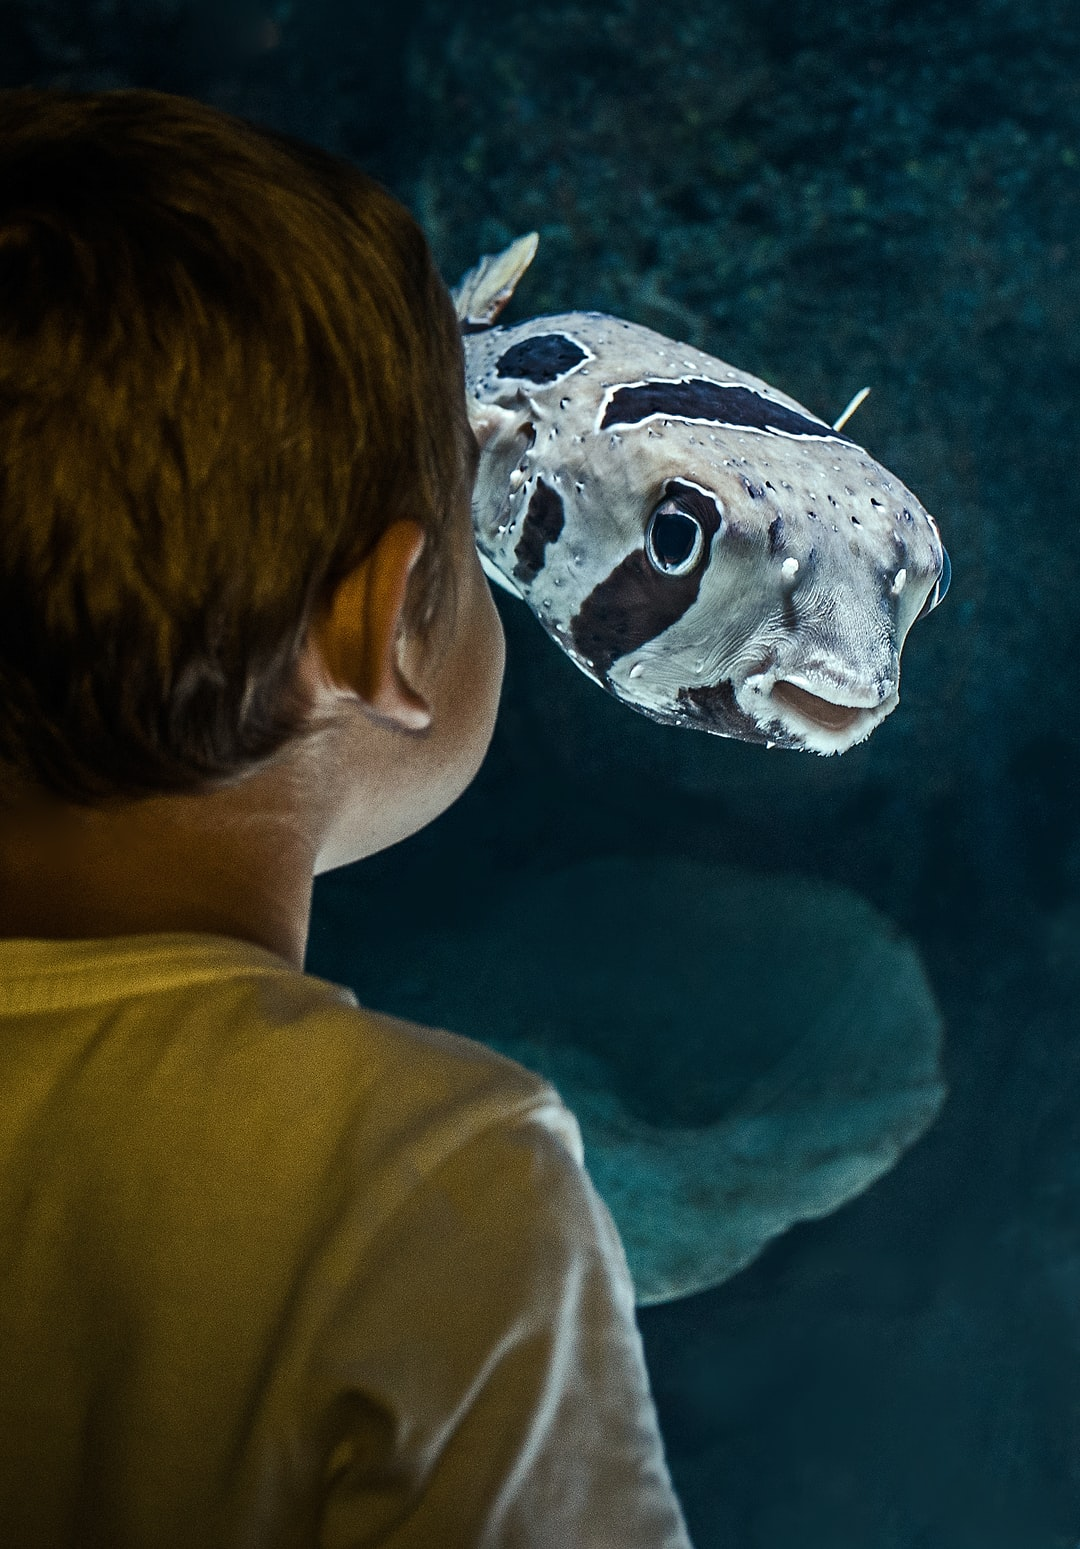 A child and a porcupine fish seem to find each other equally intriguing.